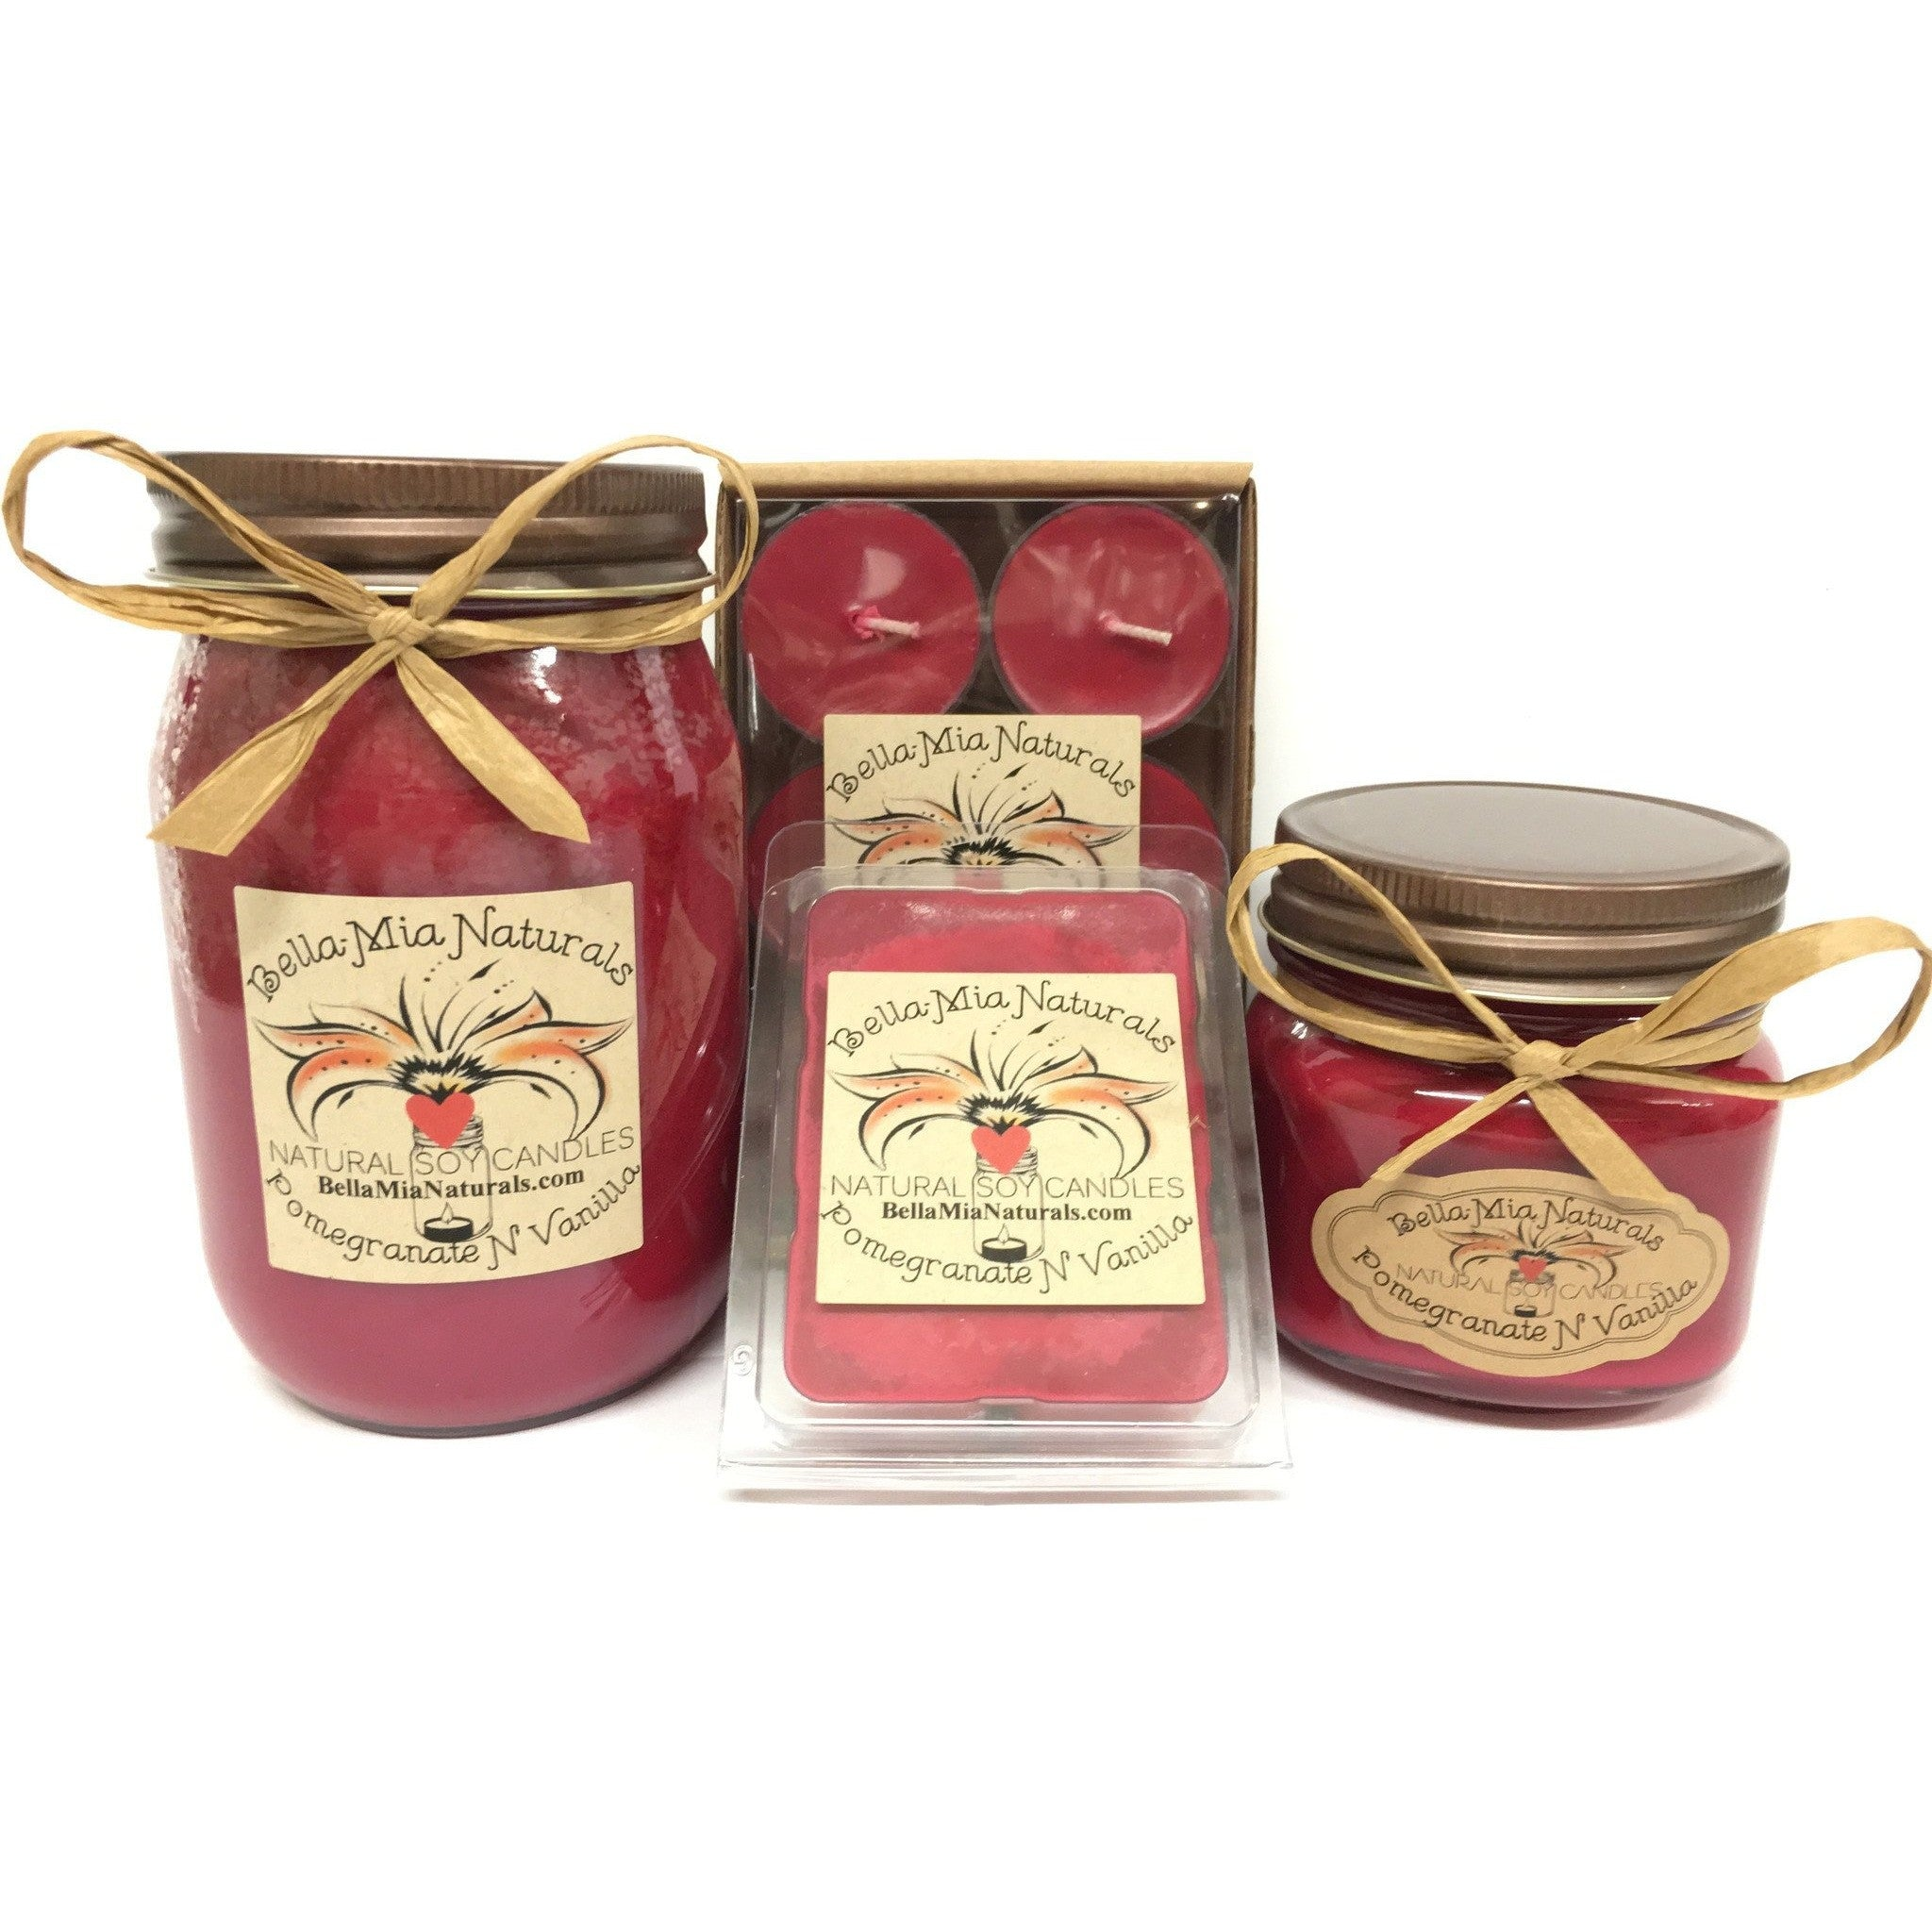 Pomegranate N' Vanilla Natural Hand Poured Soy Candles -  - Bella-Mia Naturals All Natural Soy Candles & Lip Balms - 1